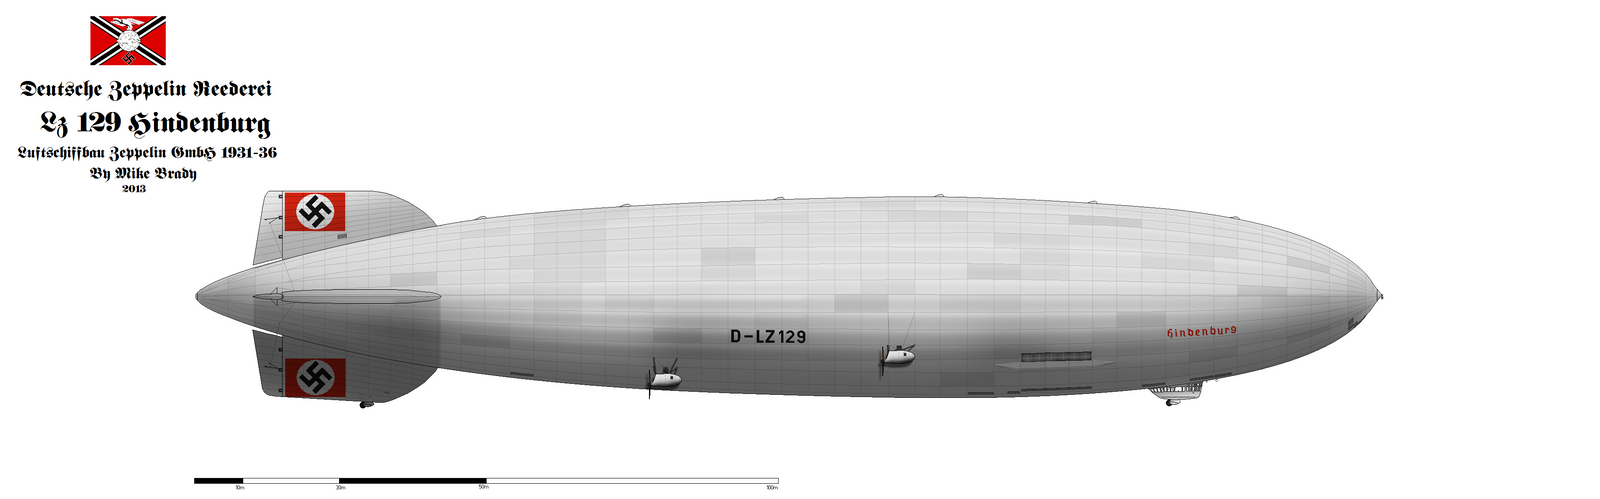 lz 129 hindenburg profile 1936 by alotef on deviantart olympic rings clip art black and white Special Olympics Clip Art